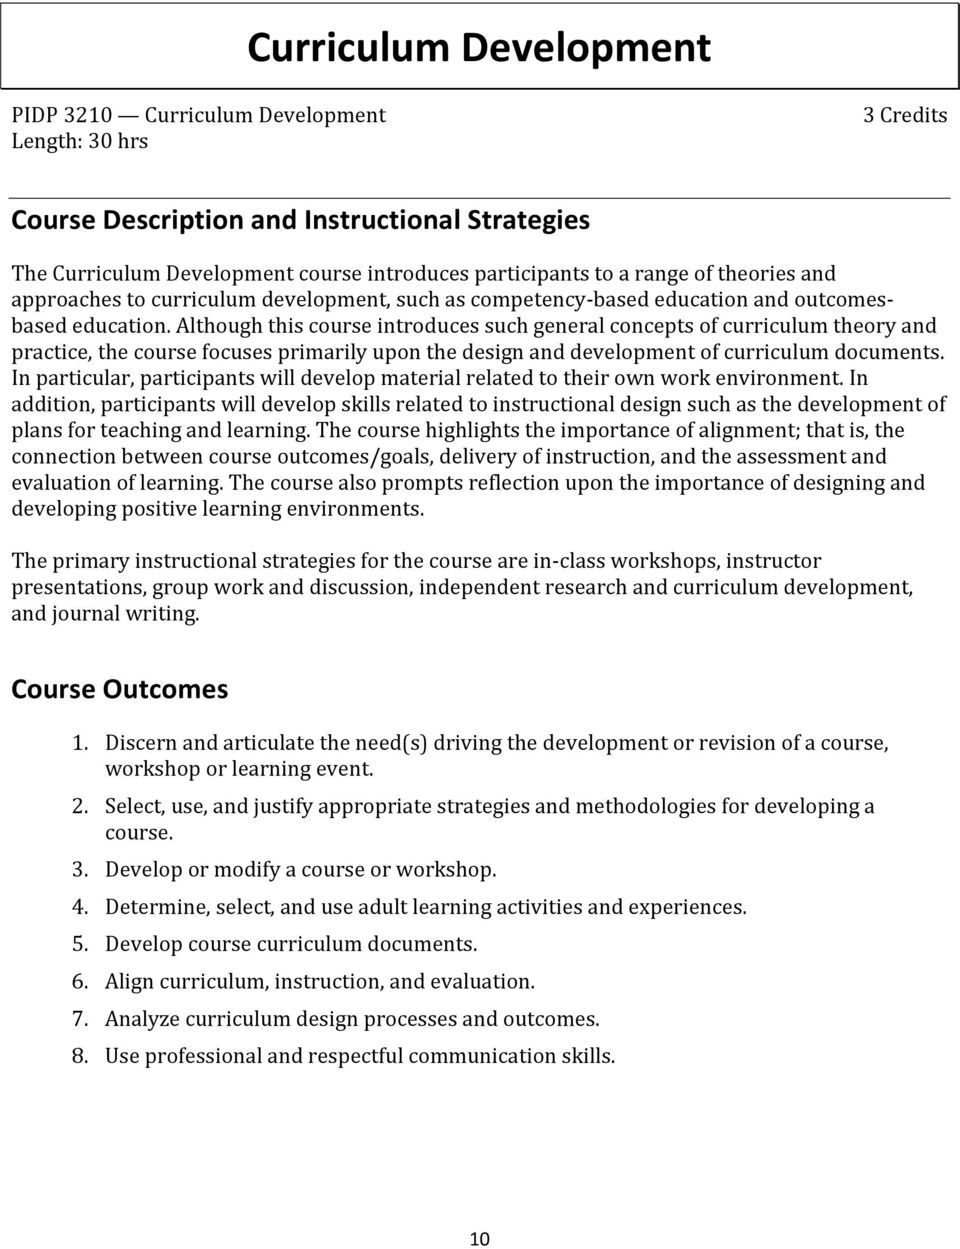 Although this course introduces such general concepts of curriculum theory and practice, the course focuses primarily upon the design and development of curriculum documents.